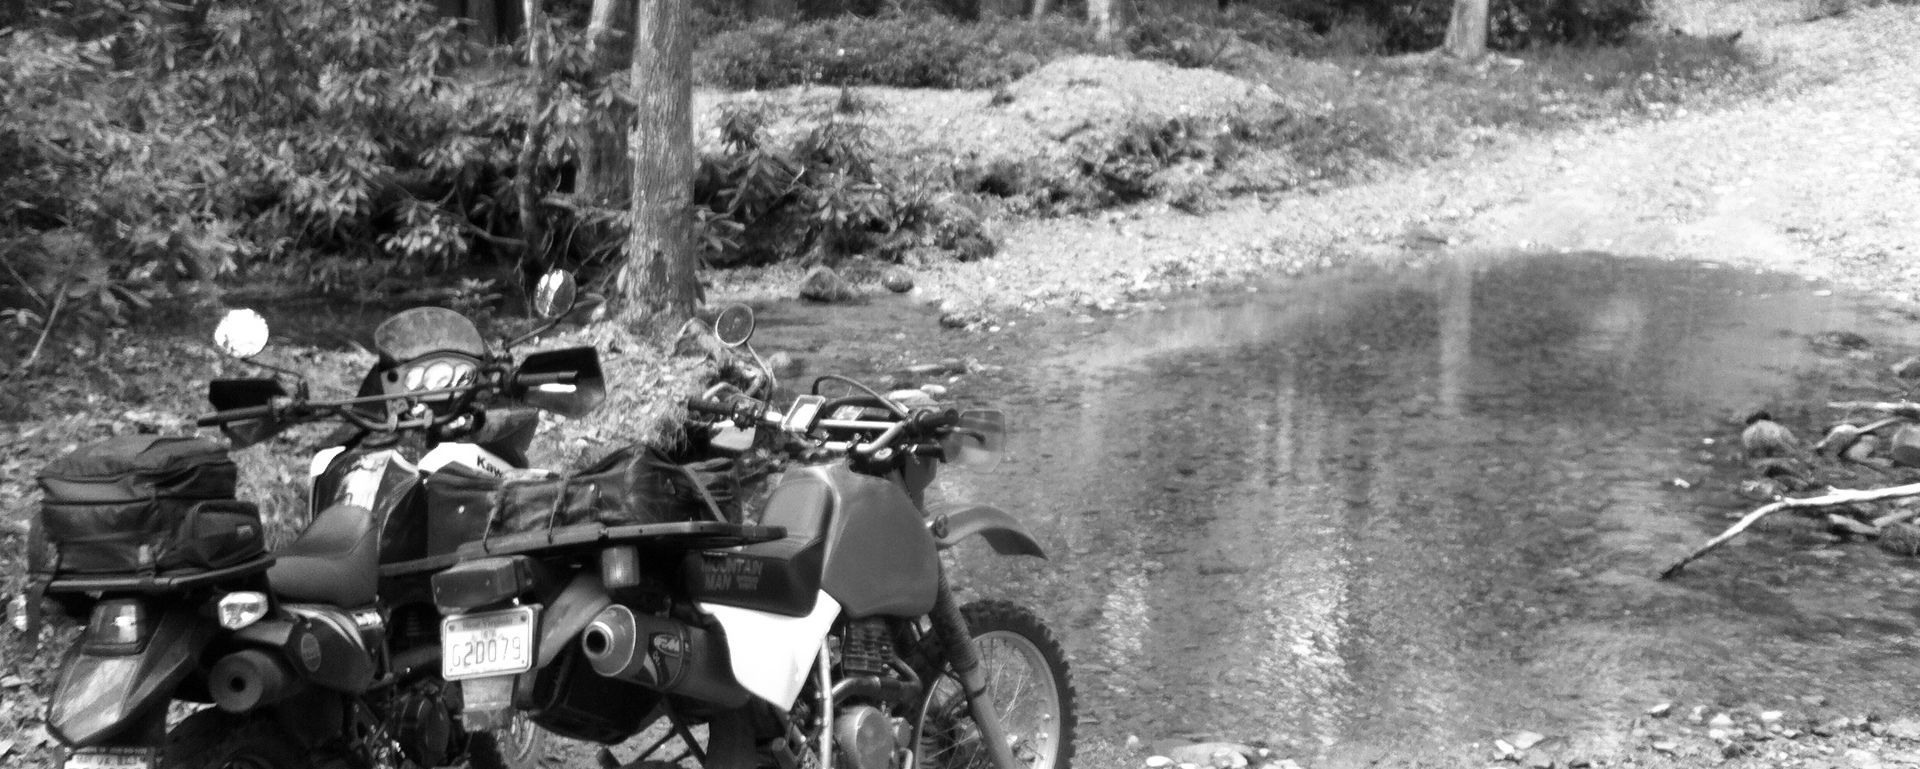 Prime-Dual-Sport-and-ADV-Routes